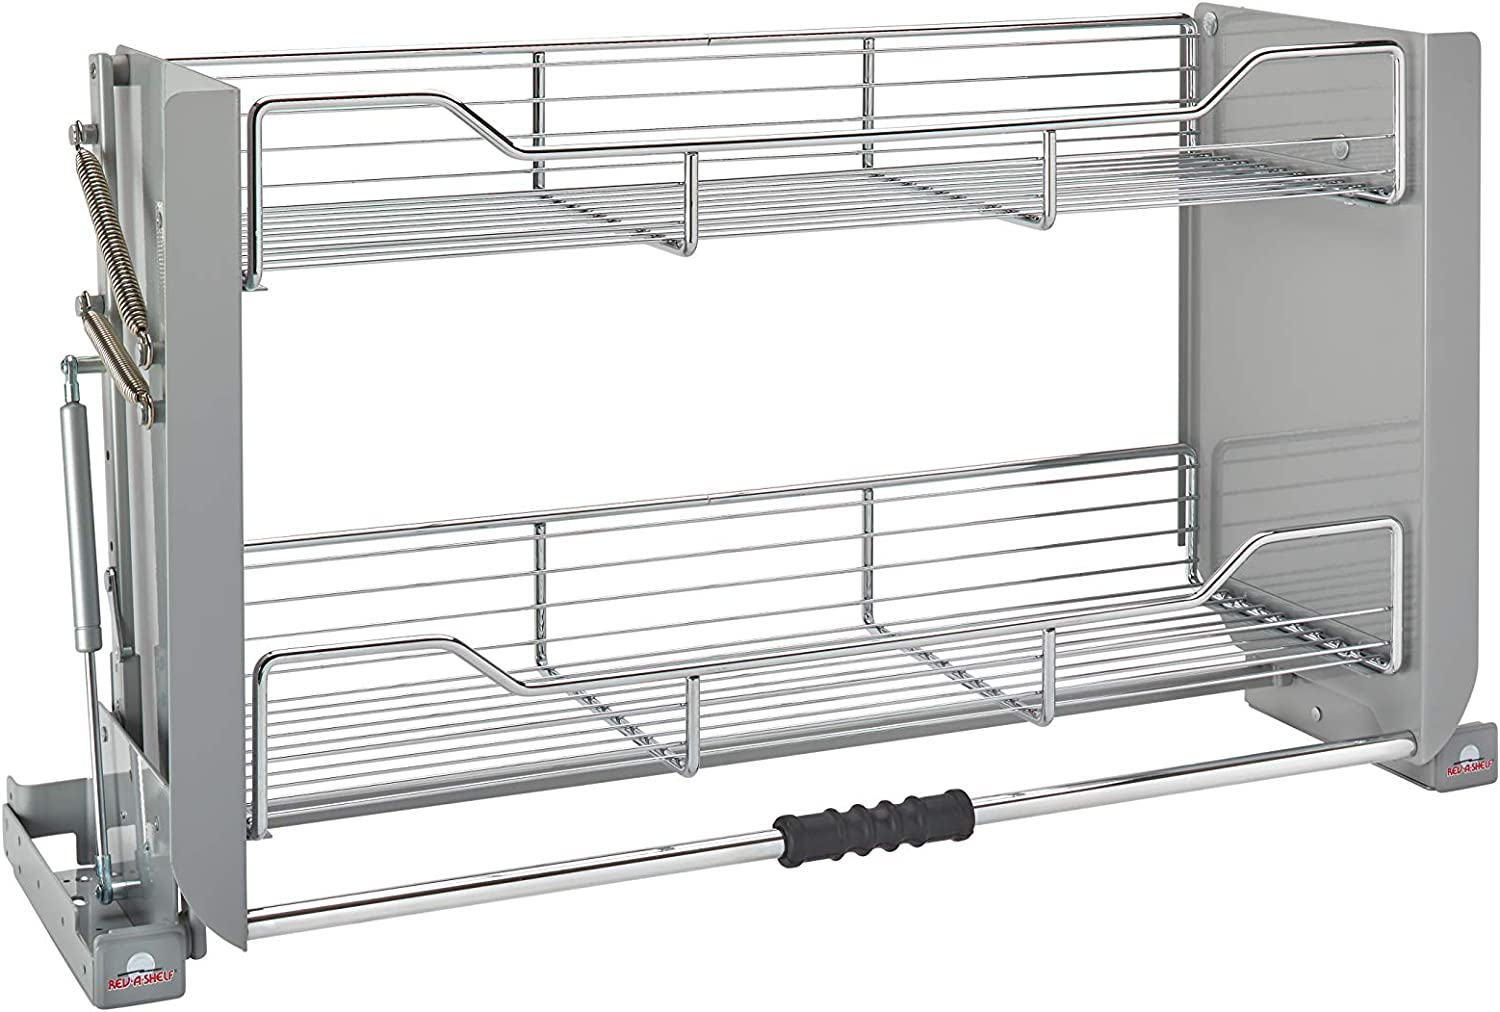 Rev A Shelf 5pd 36crn Large Wall Cabinet Pull Down Shelving System Home Kitchen